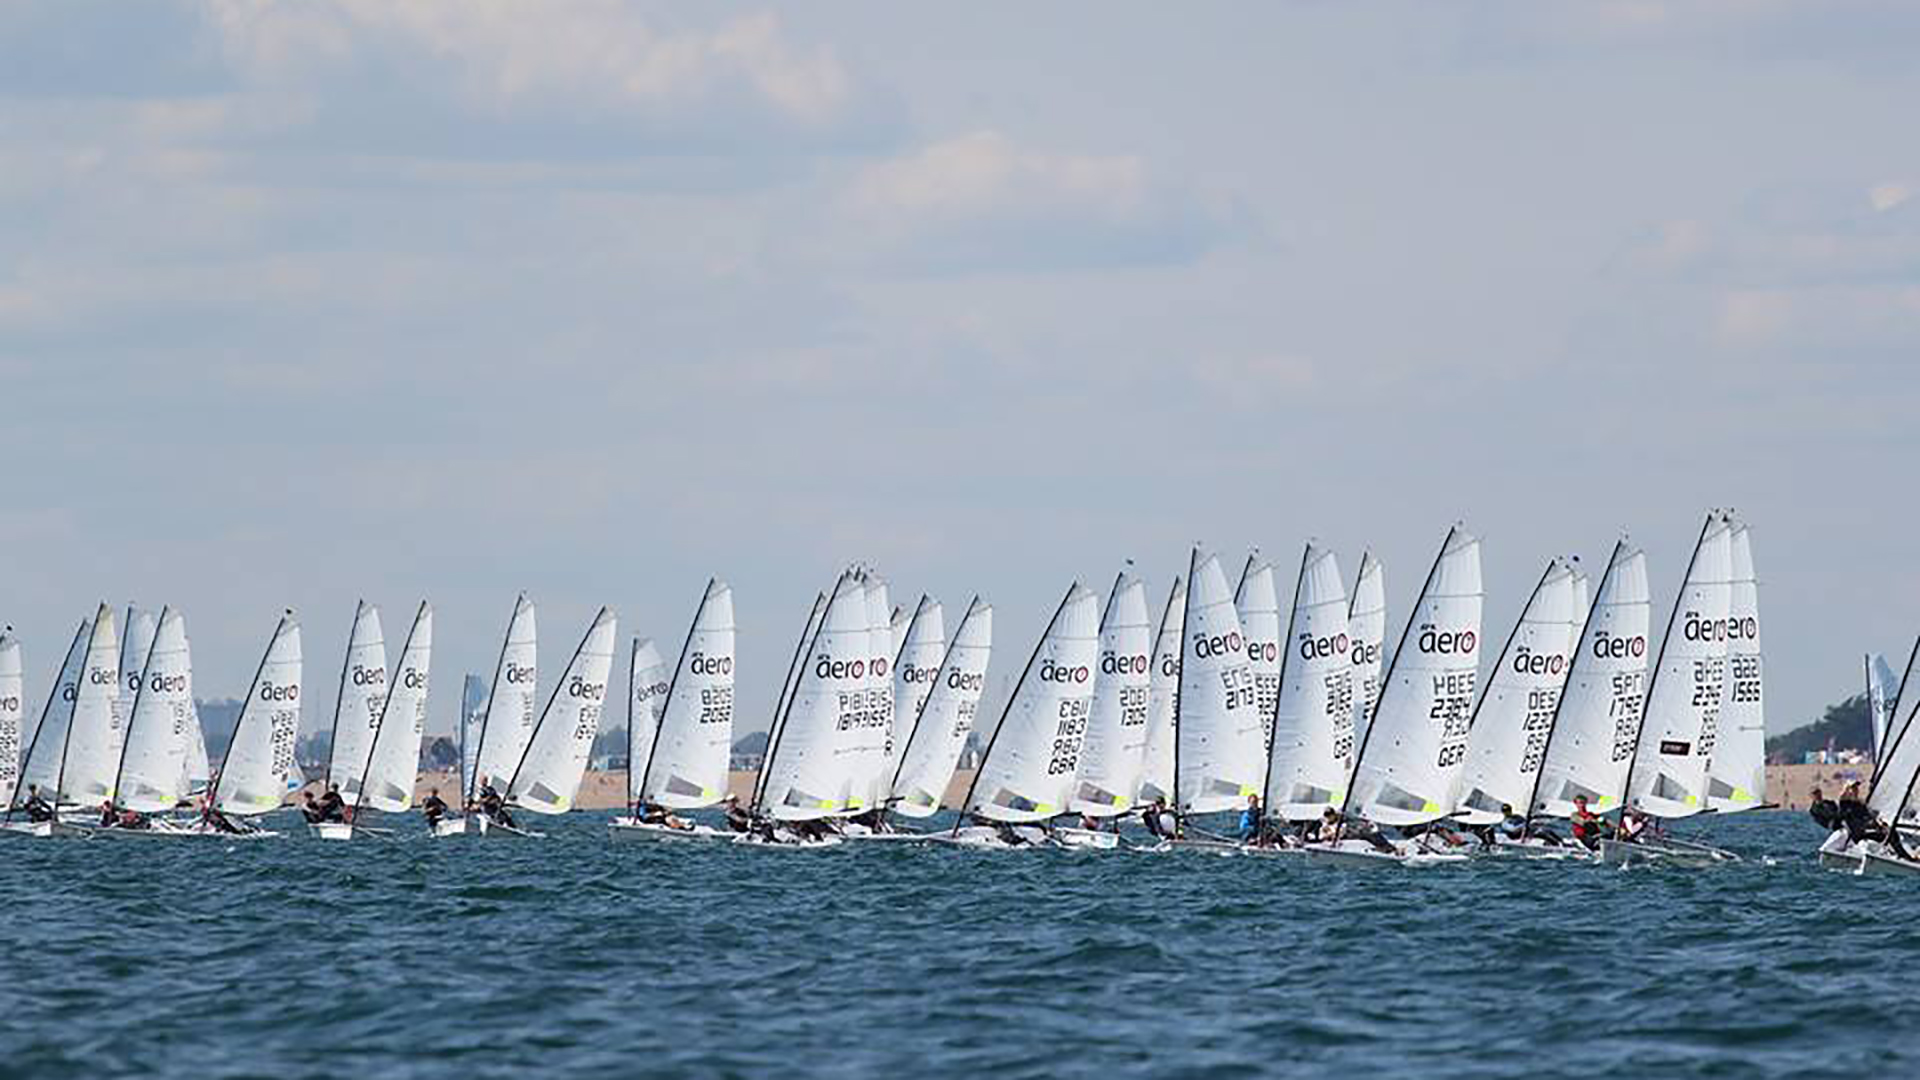 Final day of tight sail racing in the harbour provided an exciting grande finale.